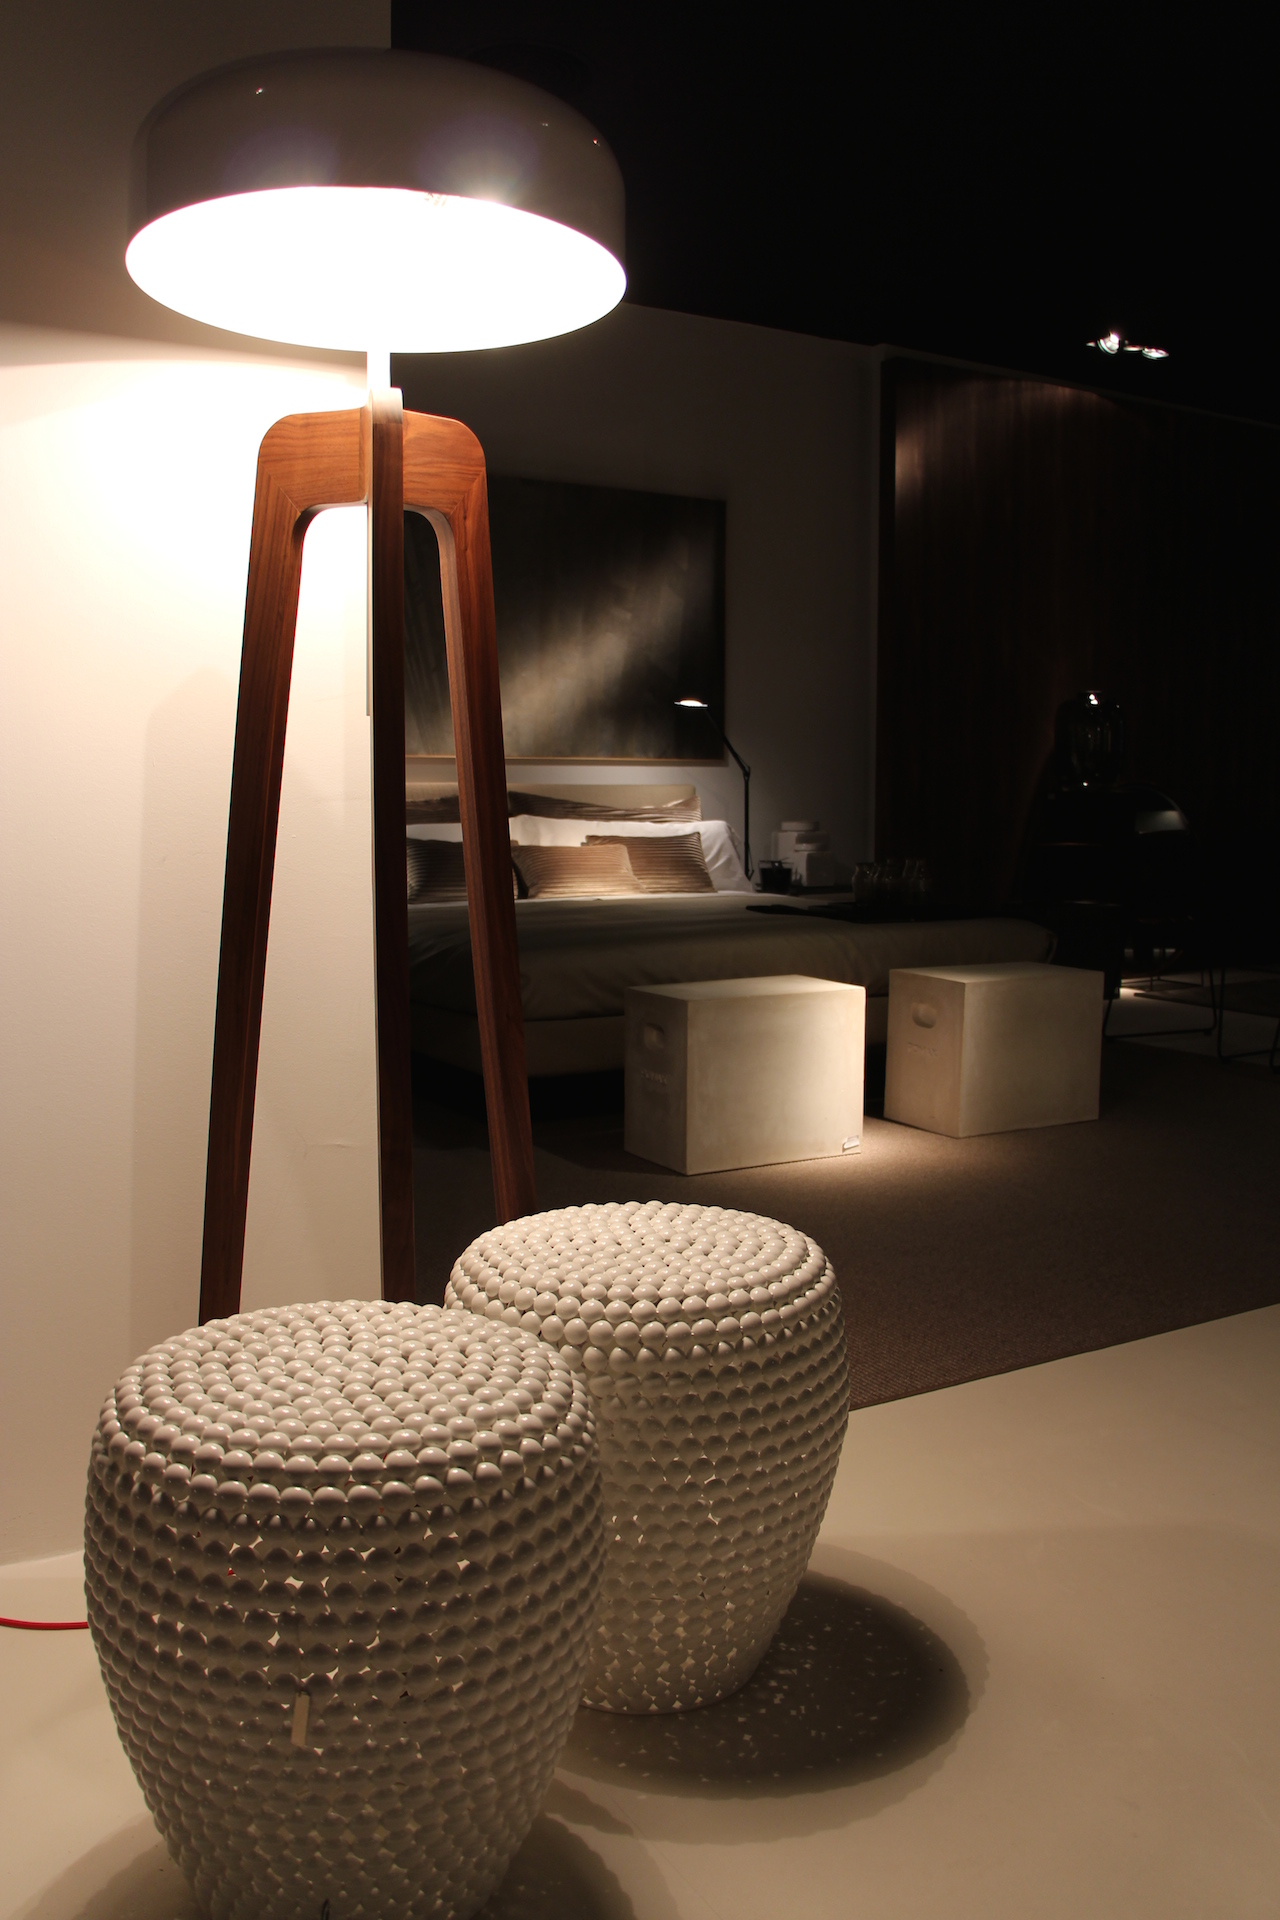 Showroom 2014 @mercaderdeindia. Interiorismo.